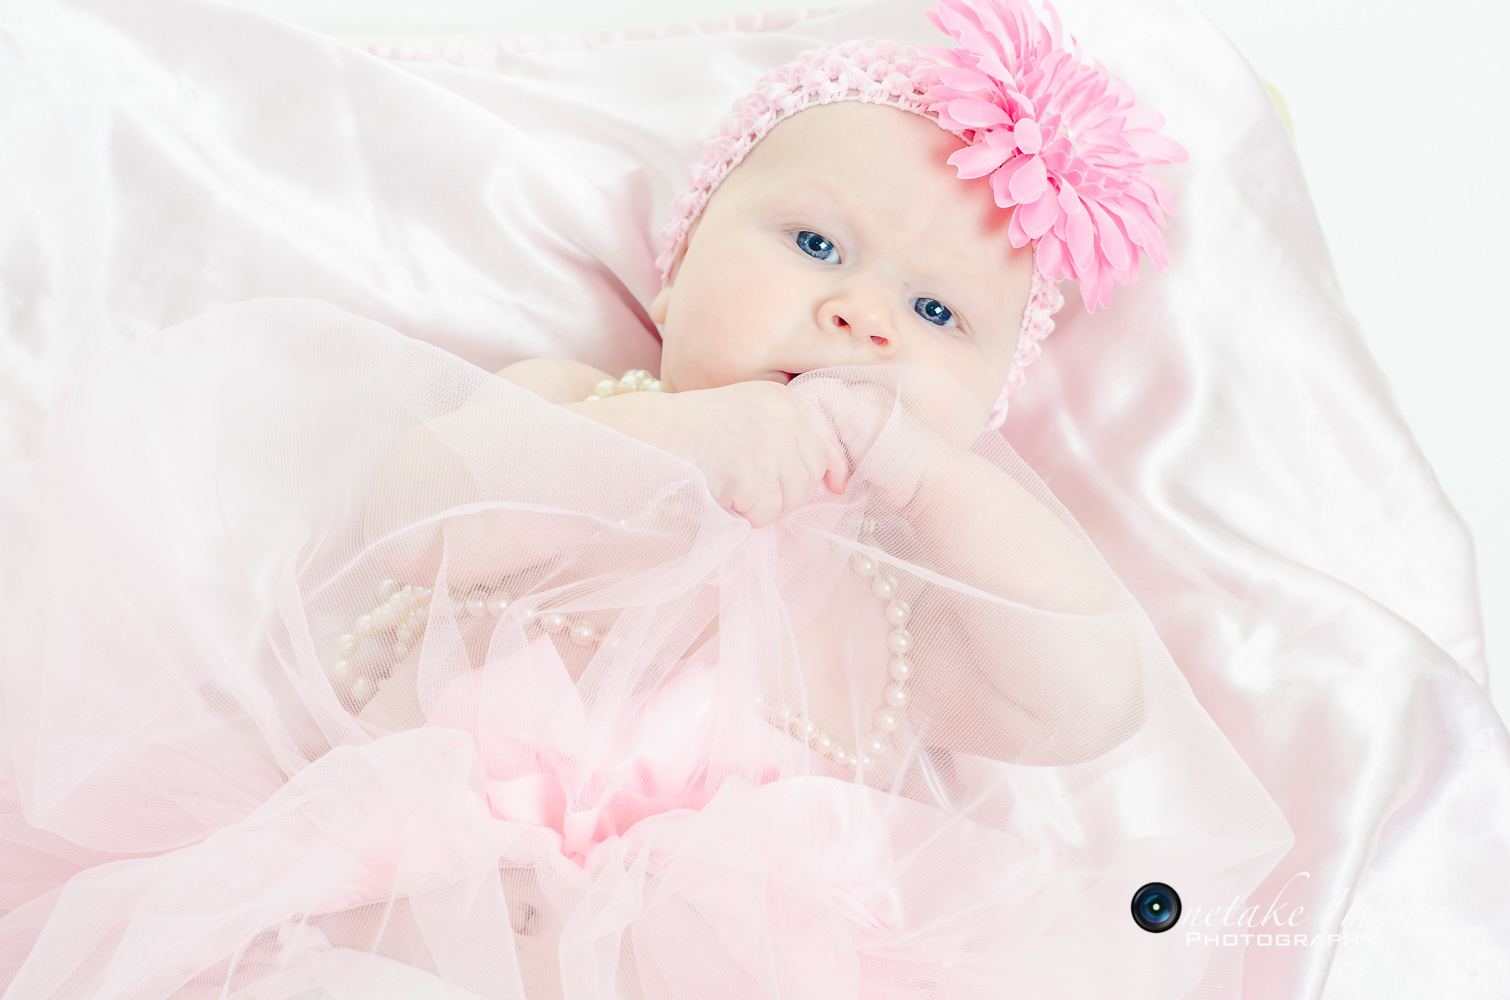 Baby Meadow - Children Photography-6